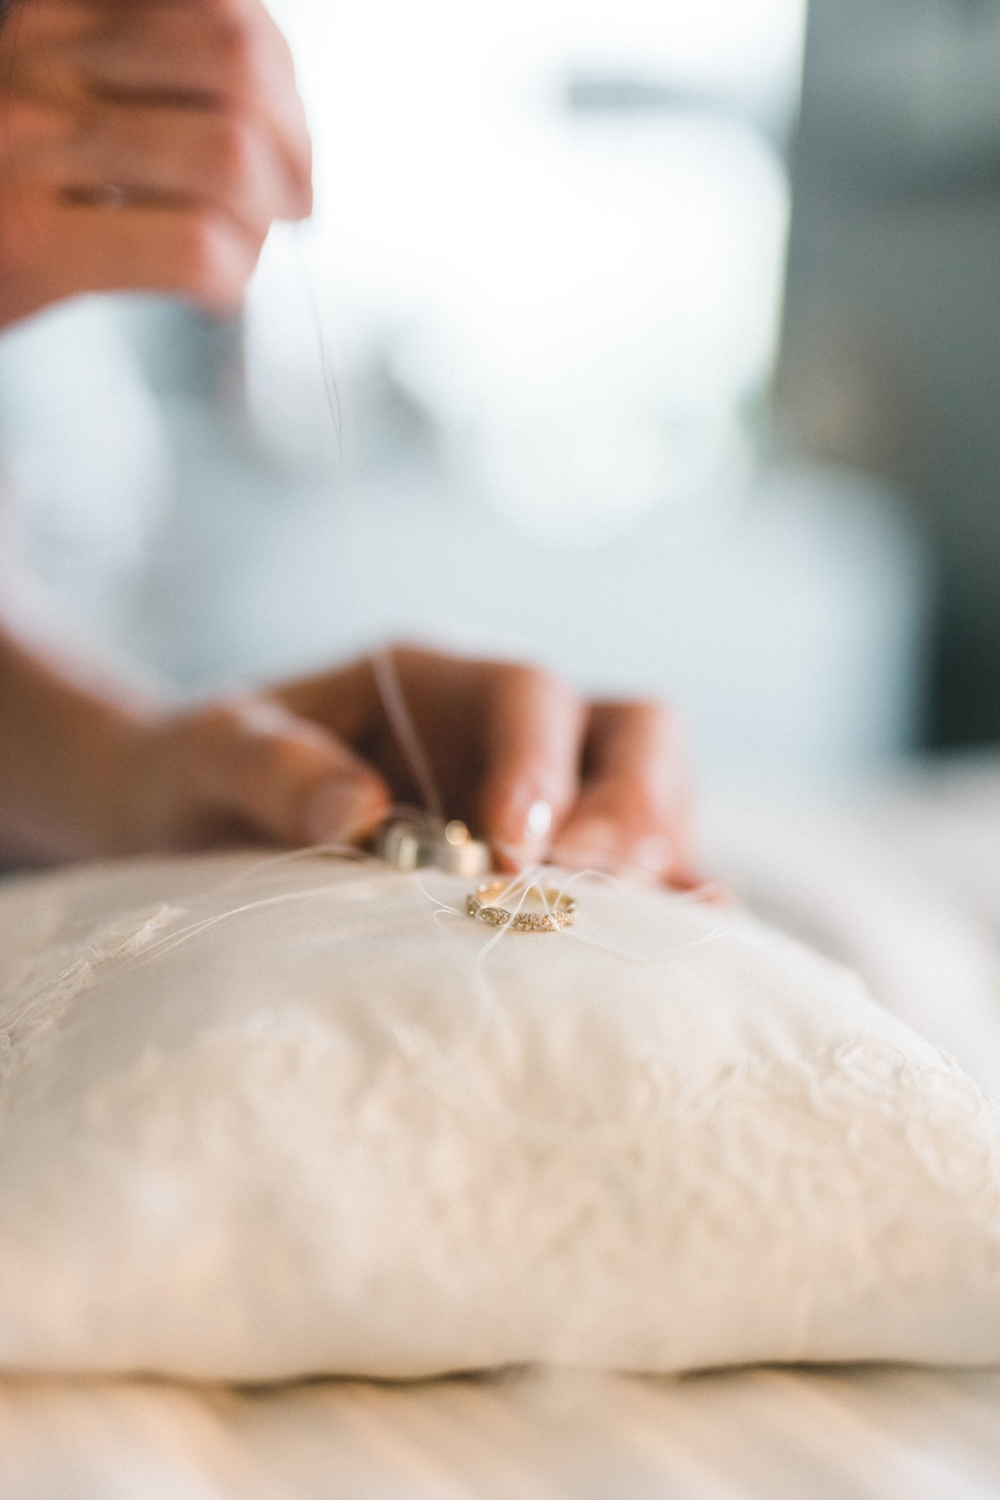 The silk ring pillow was also designed using lace remnants from Brielle's wedding gown. The tailor's tack stitch is always the best way to fasten real wedding rings to the ring pillow. Our handmade ring pillows are so beautiful they can be used for home decor or in a nursery after the wedding.